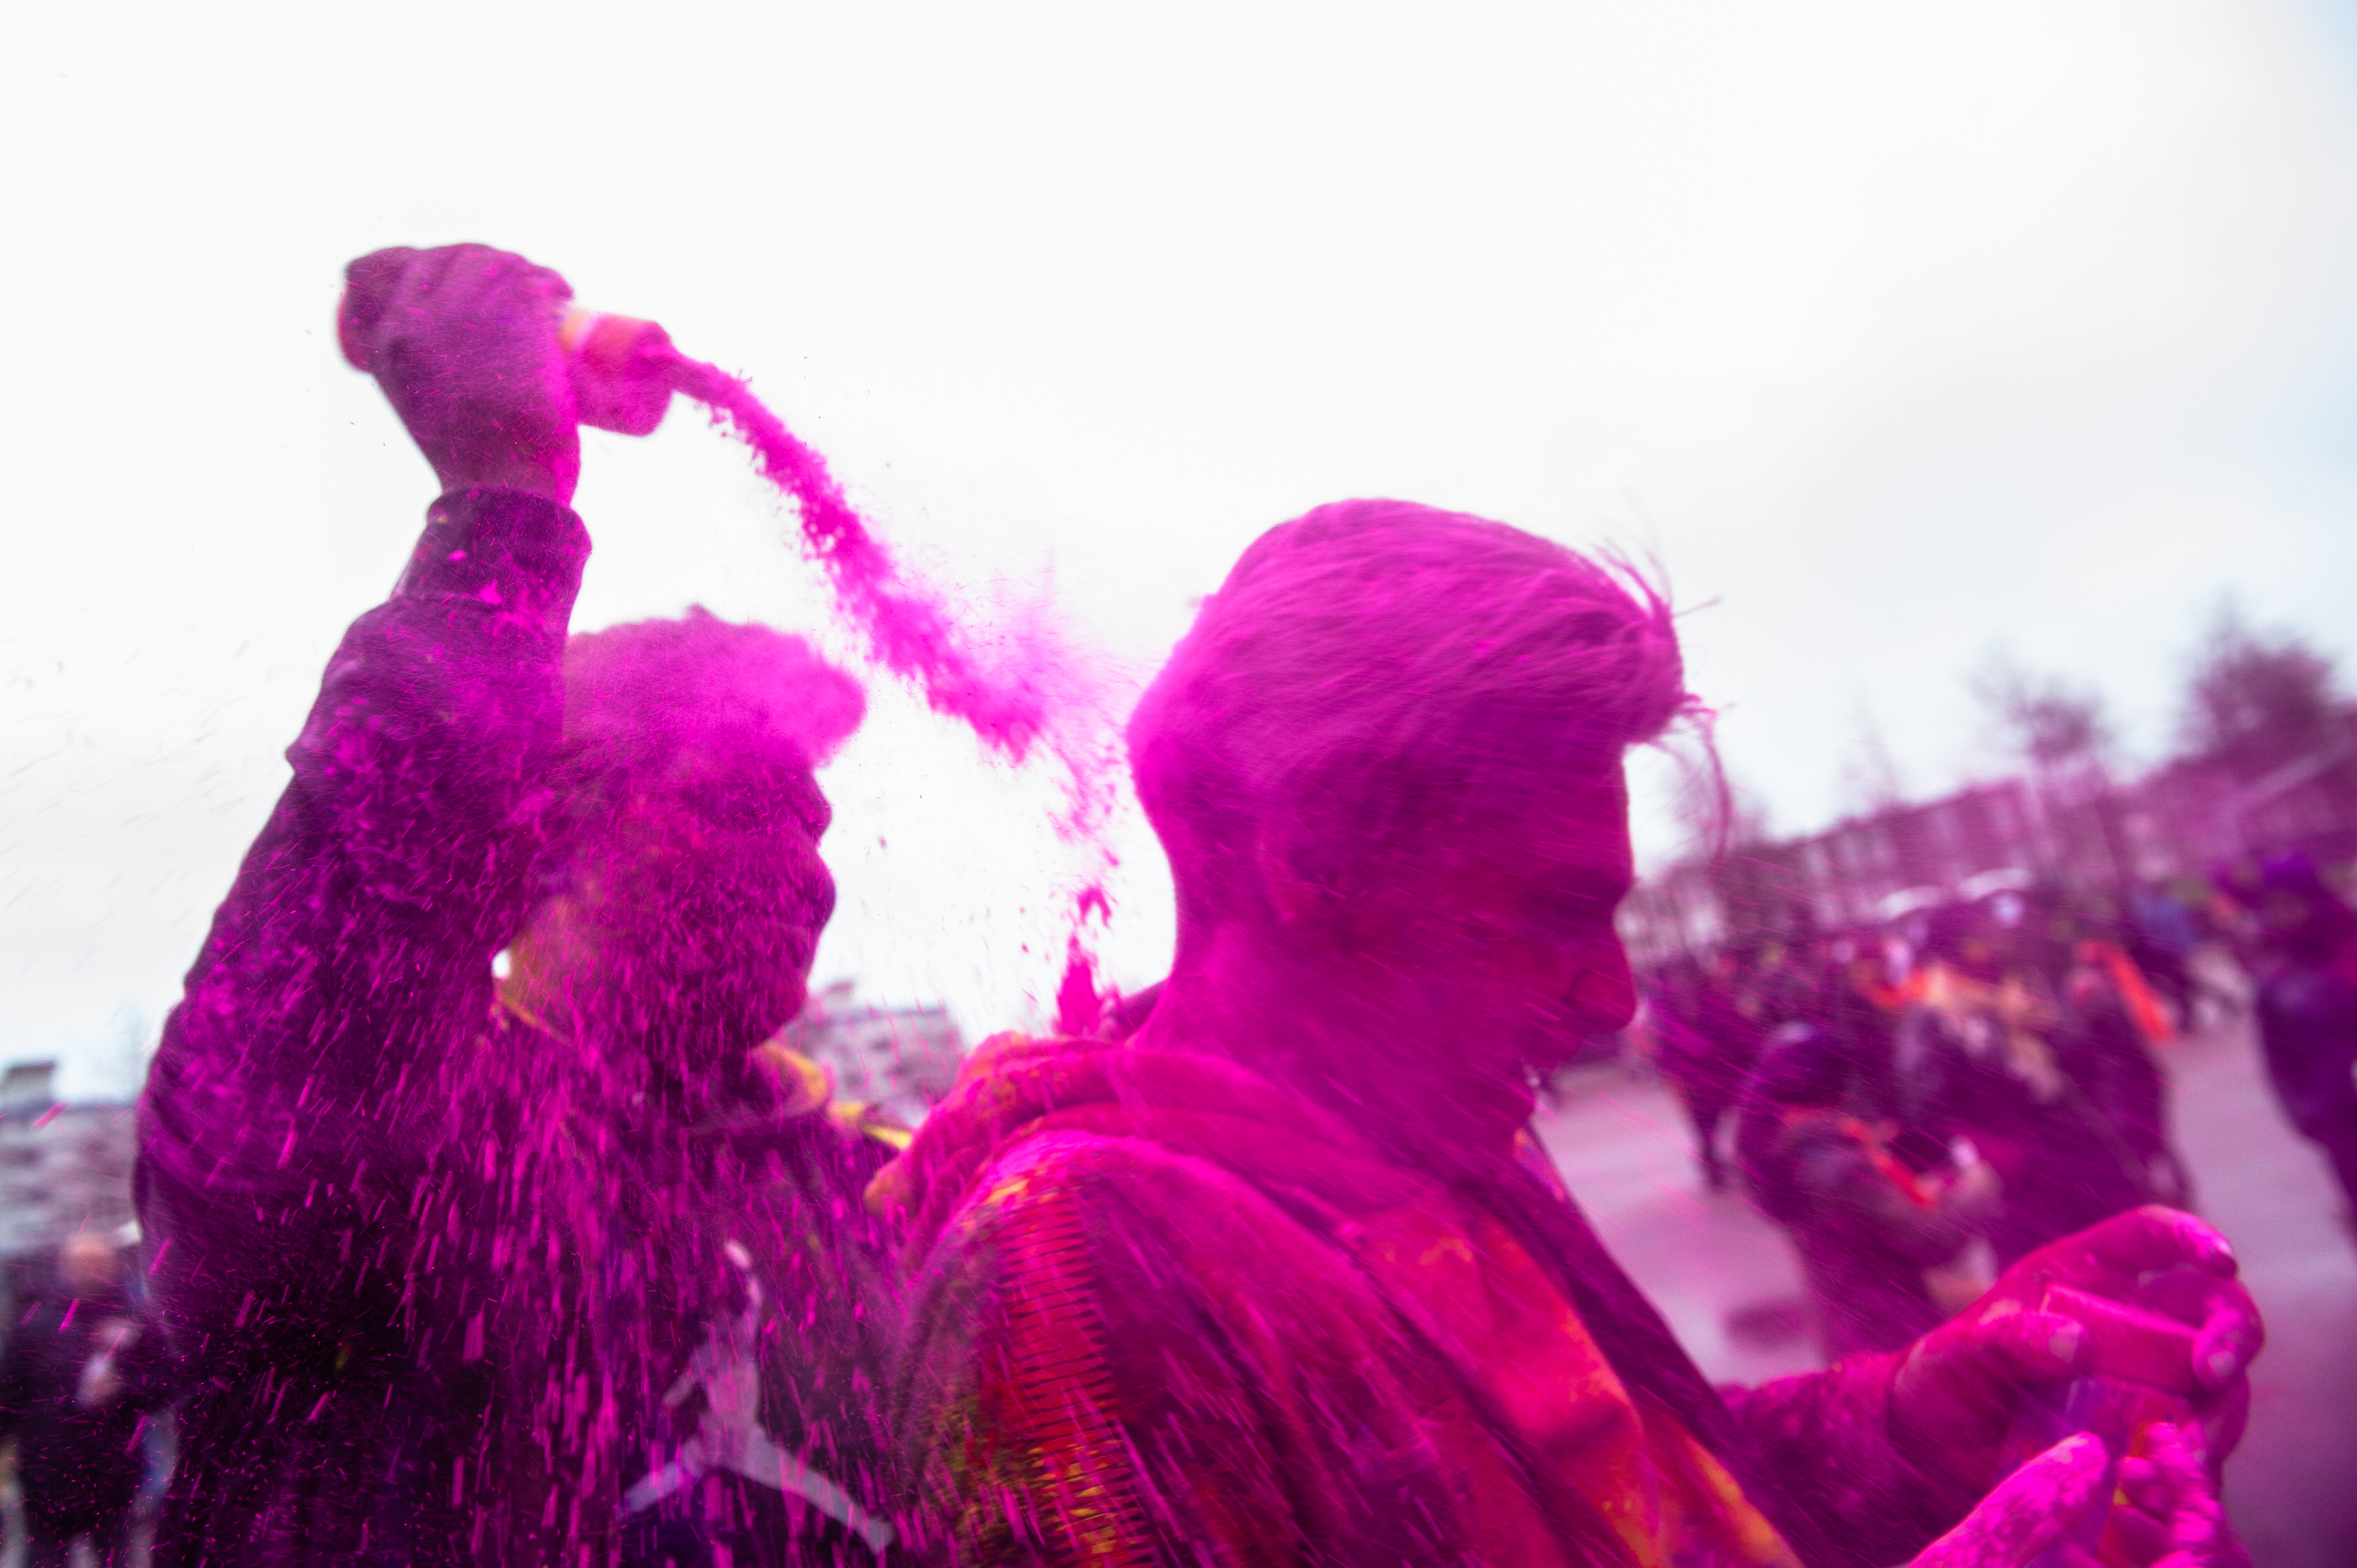 March 10th, The Hague. Millions of people around the world celebrate the annual Holi Hangámá Festival, also known as the Festival of Colours. For Hindus, it's a celebration of the arrival of spring, the New Year and victory all in one. The largest Indian population in Europe (outside of the UK) can be found in The Hague, this is one of the largest in Europe. The highlight of the Holi celebrations is the procession through the multicultural Transvaal and Schilderswijk neighborhoods. Participants in the procession throw brightly colored powder on themselves and at each other to show that spring has begun. This year the theme chosen is Freedom, which is especially important for migrant groups in the Netherlands.